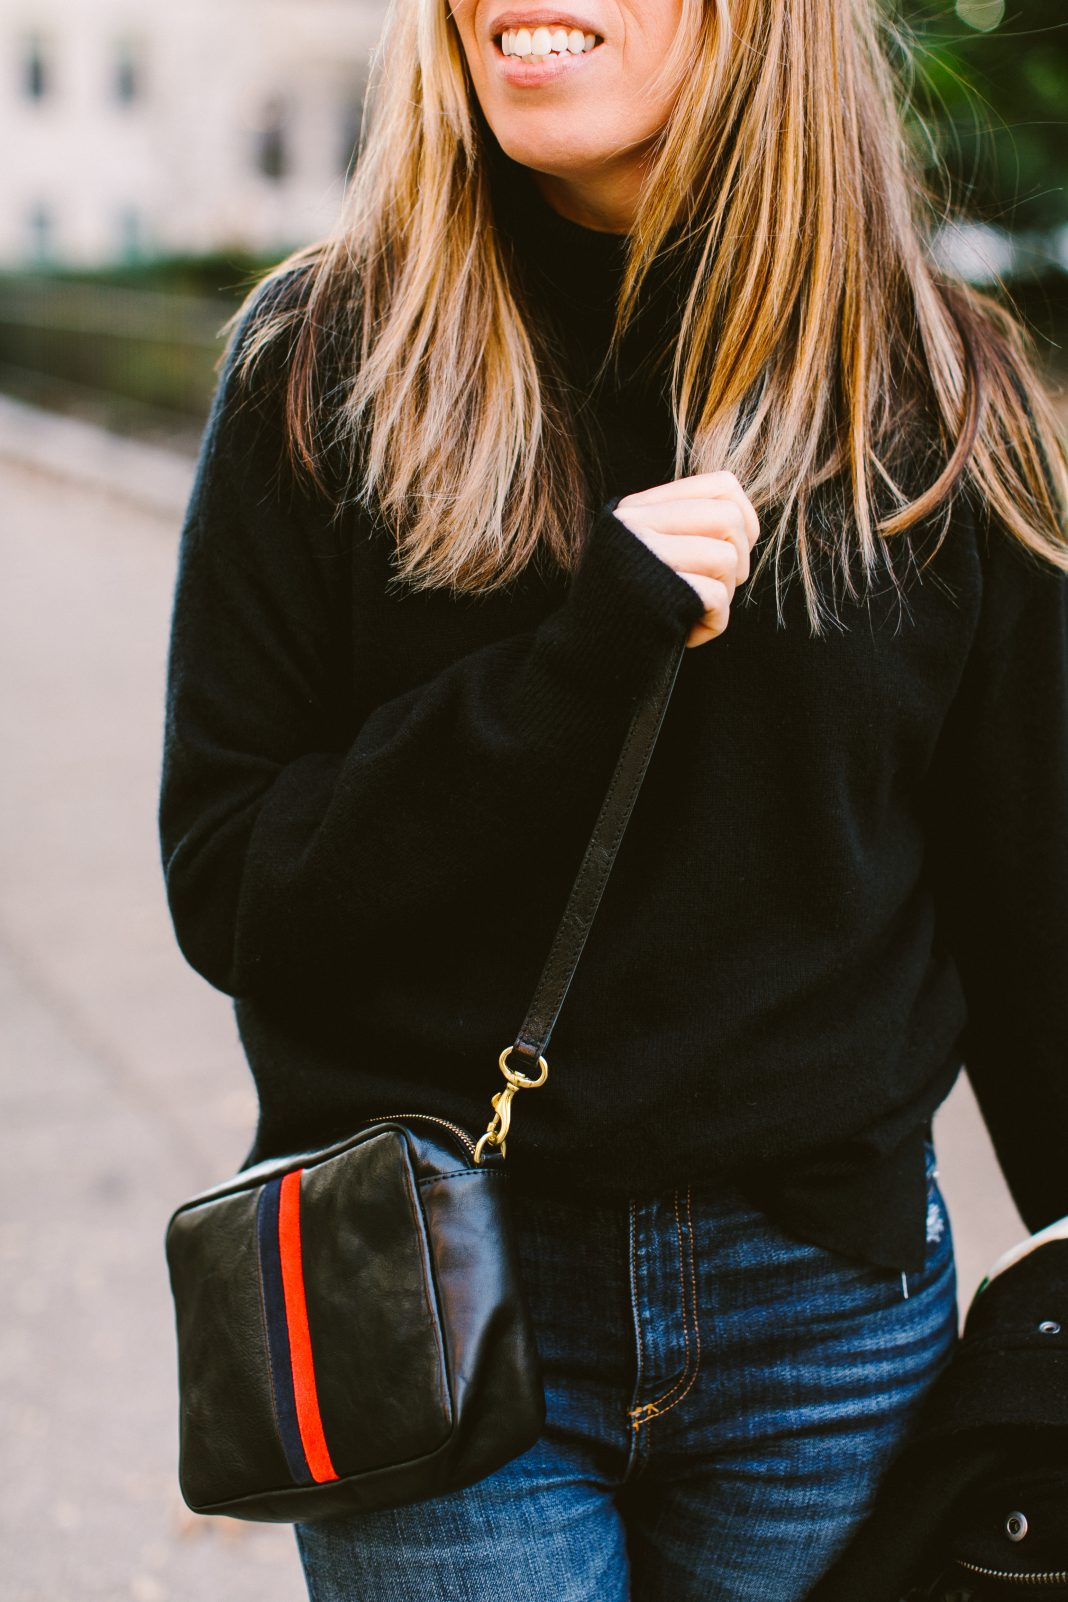 Obvi you need a sweater or 3 to go w/ those jeans. NAADAM, Free People, Vince, Madewell — the best Black Friday deals on warm, sexy, oversized sweaters —right here.